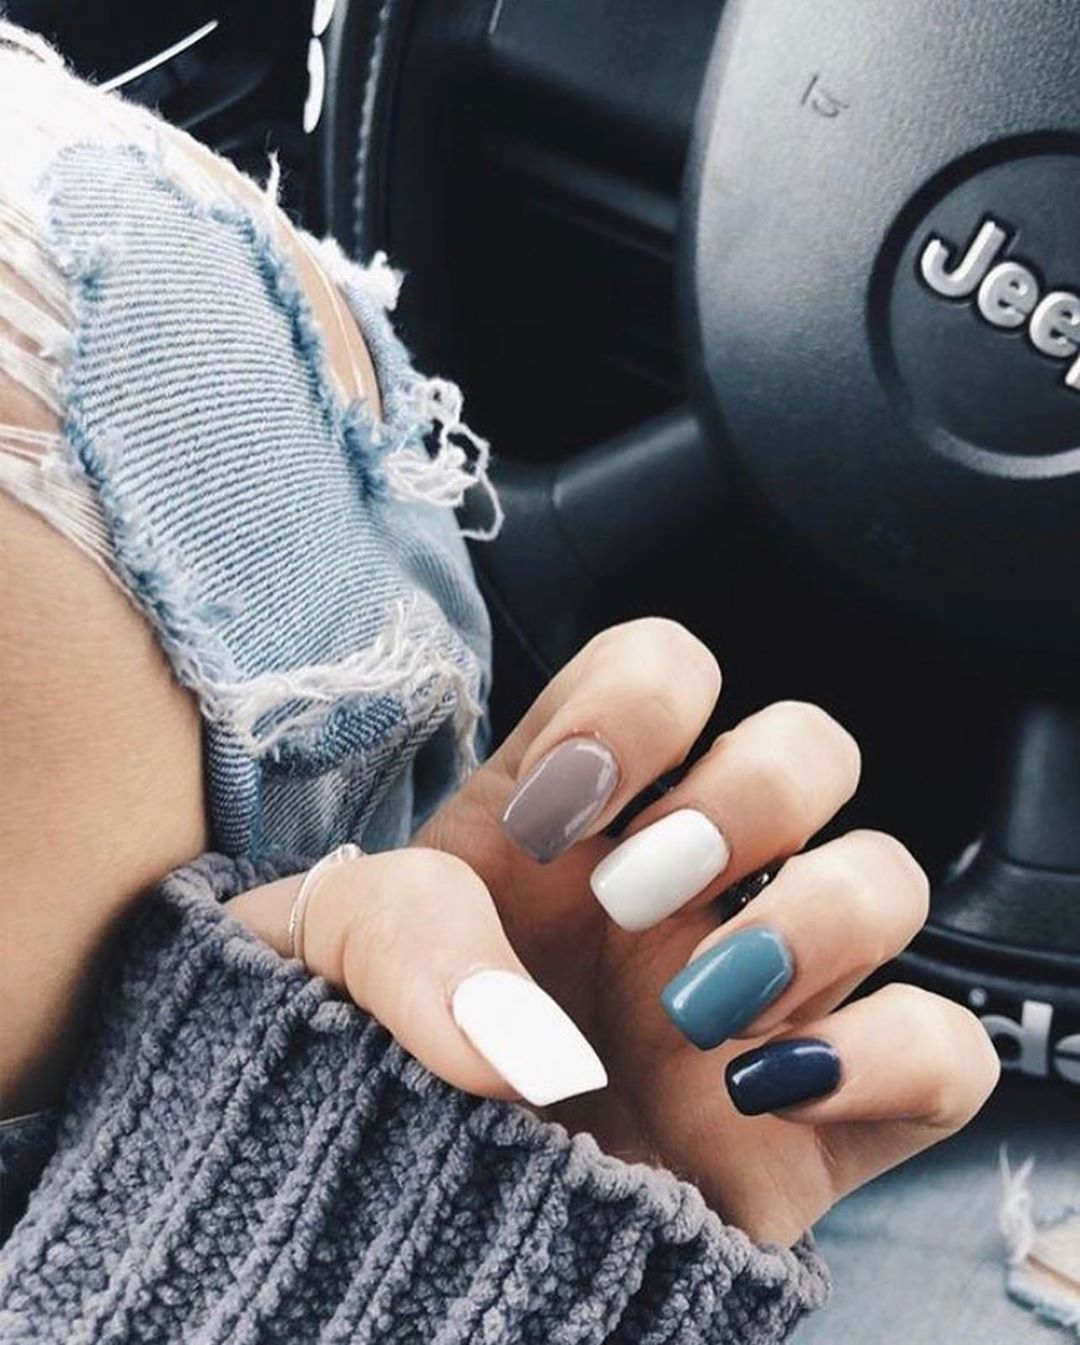 On Instagram Nail Inspo Qotd How Often Do You Get Your Nails Done Tags Vsco V Pretty Acrylic Nails Cute Acrylic Nails Nail Designs